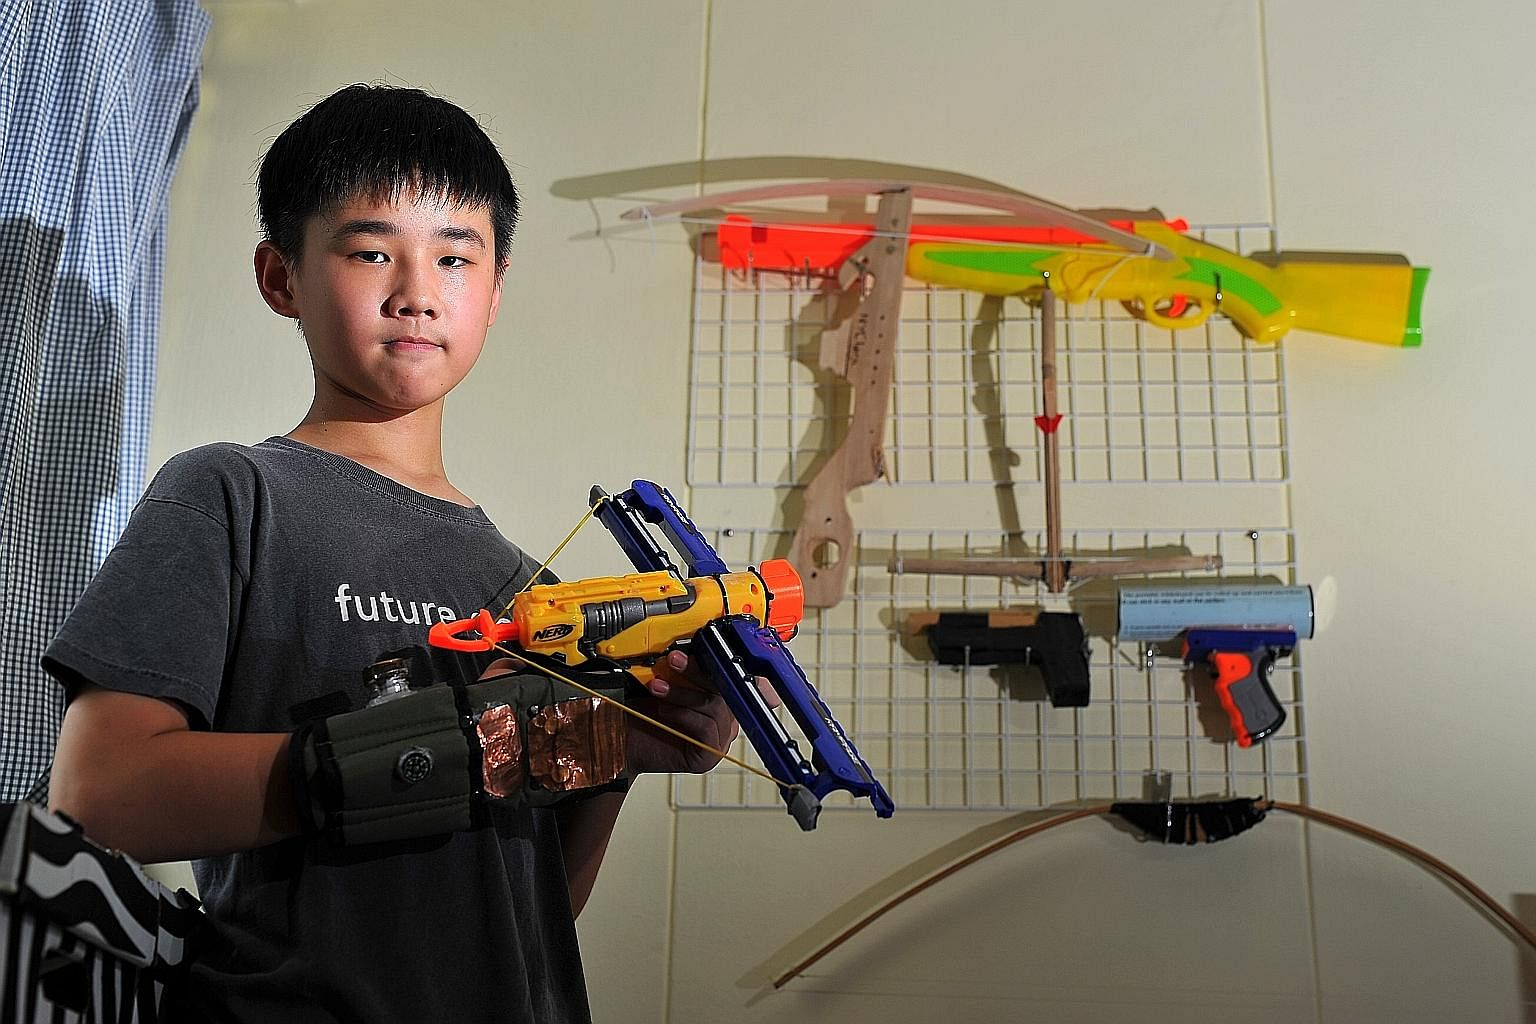 Best Toys For 12 Years : 12 year old boy building his own car singapore news & top stories